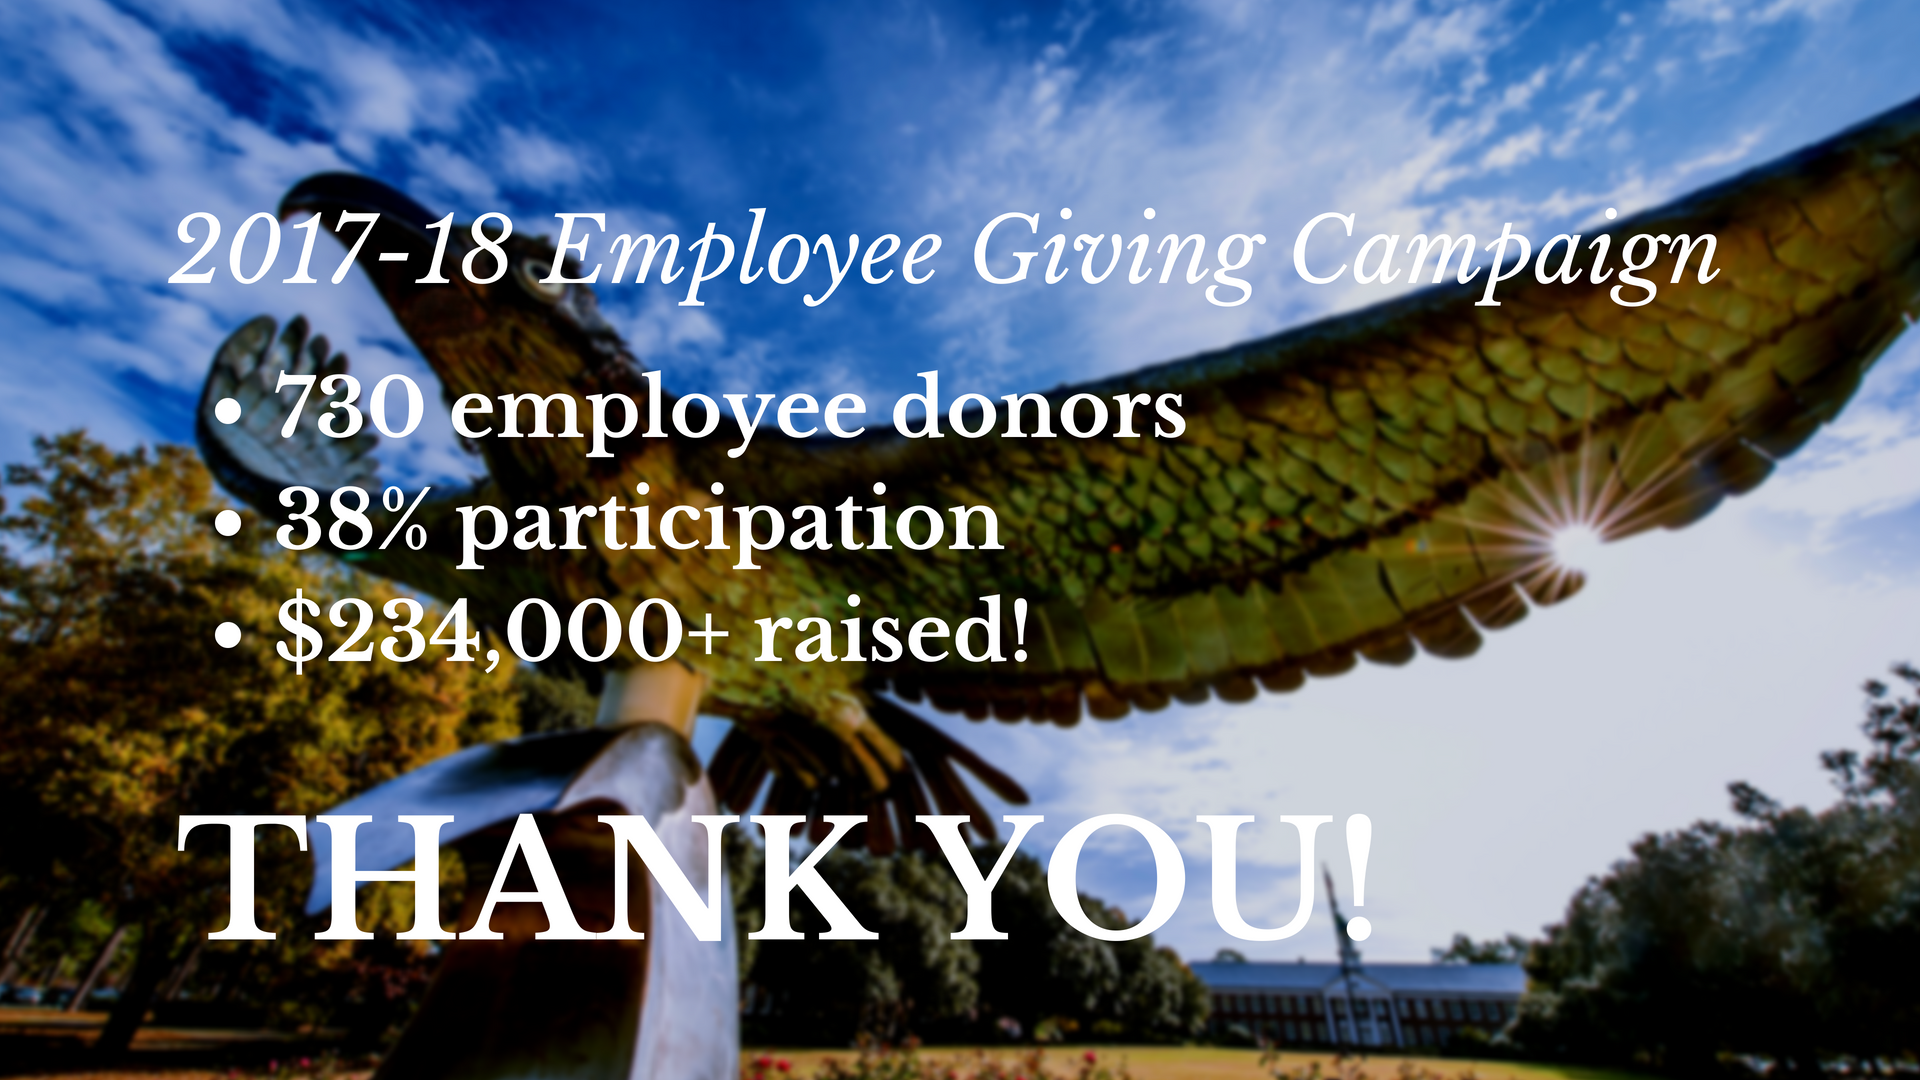 2017-18 Employee Giving Campaign